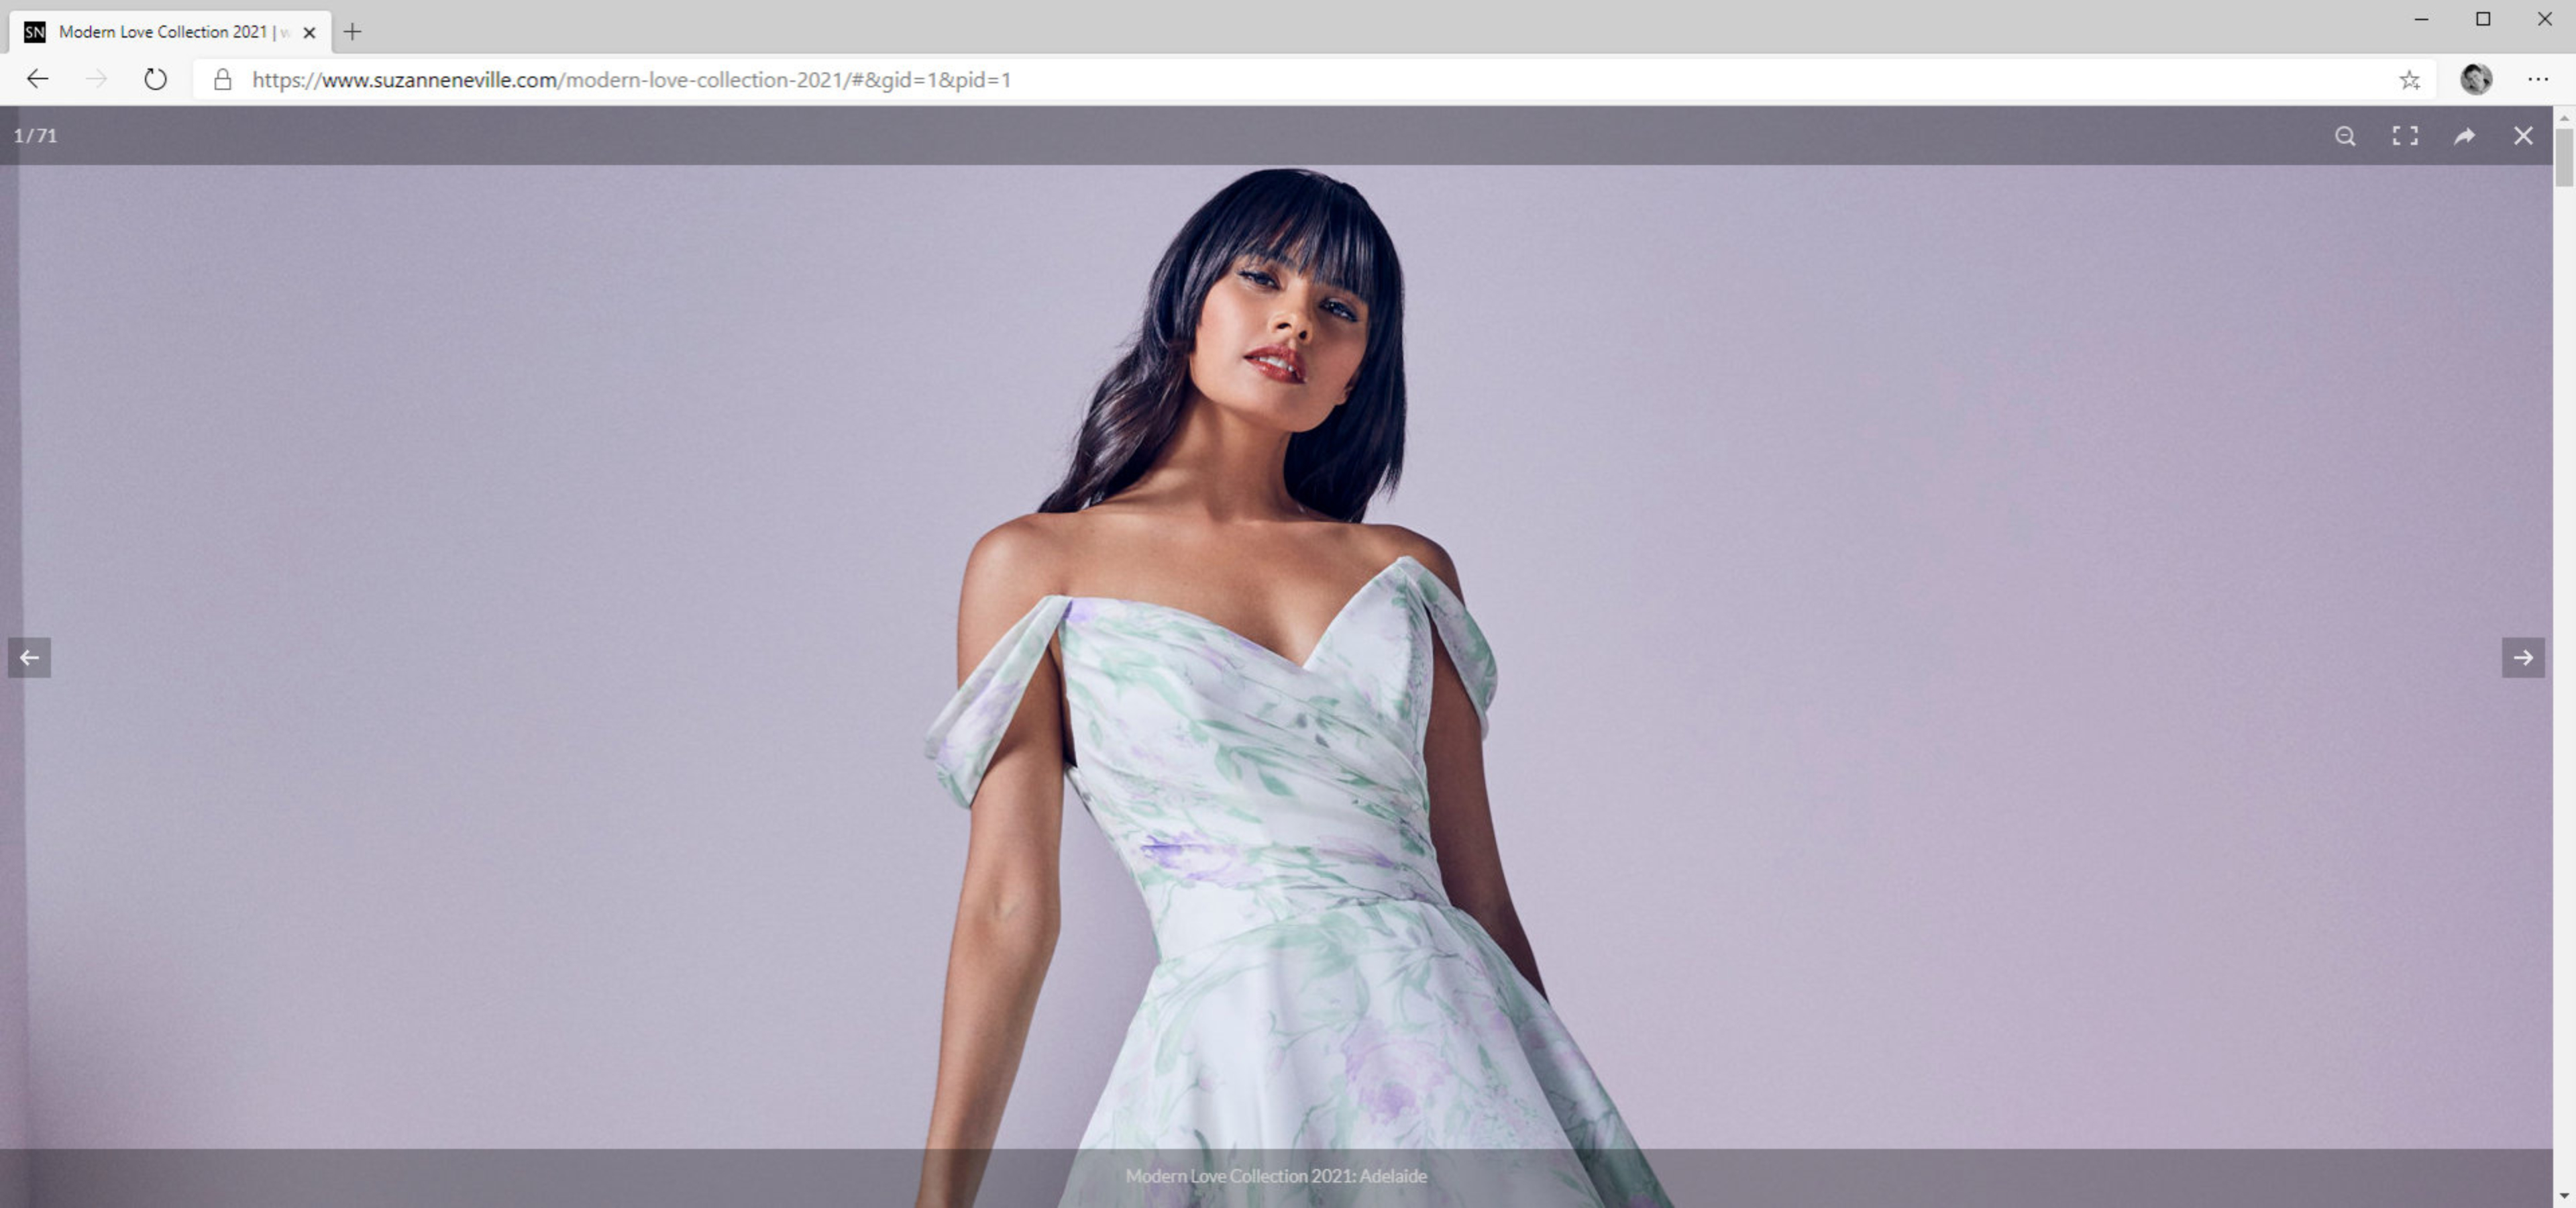 suzanne-neville-bridal-collection-2020-modern-love-gallery-zoom-tang-marketing